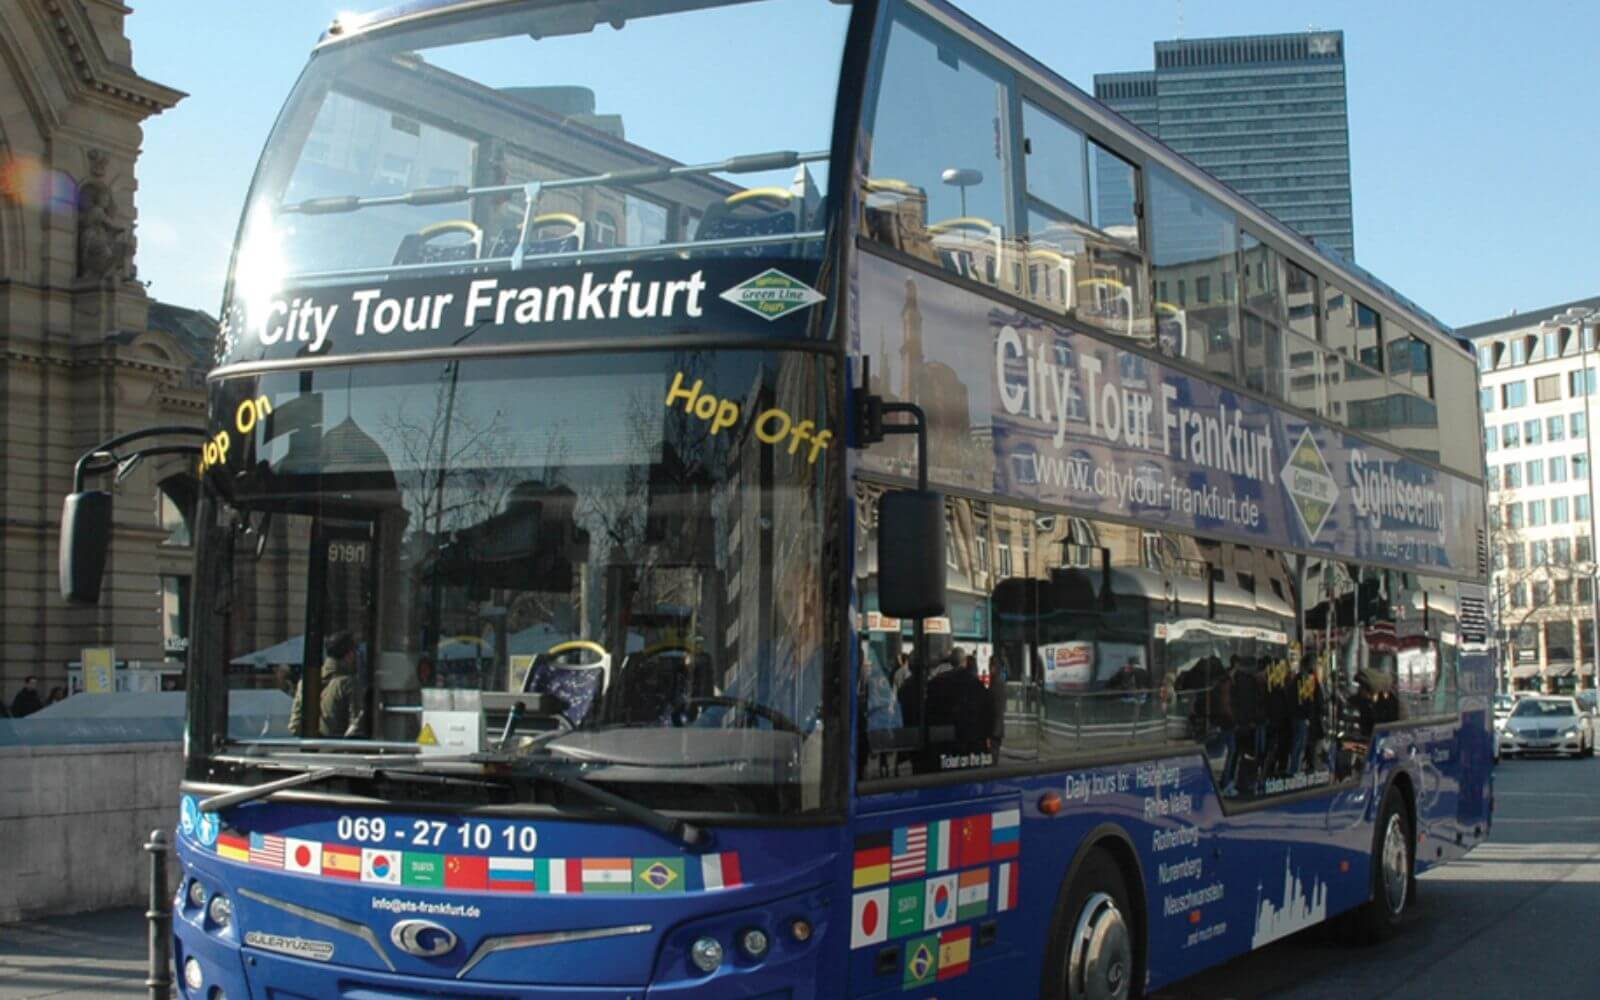 Frankfurt City Hop On – Hop Off